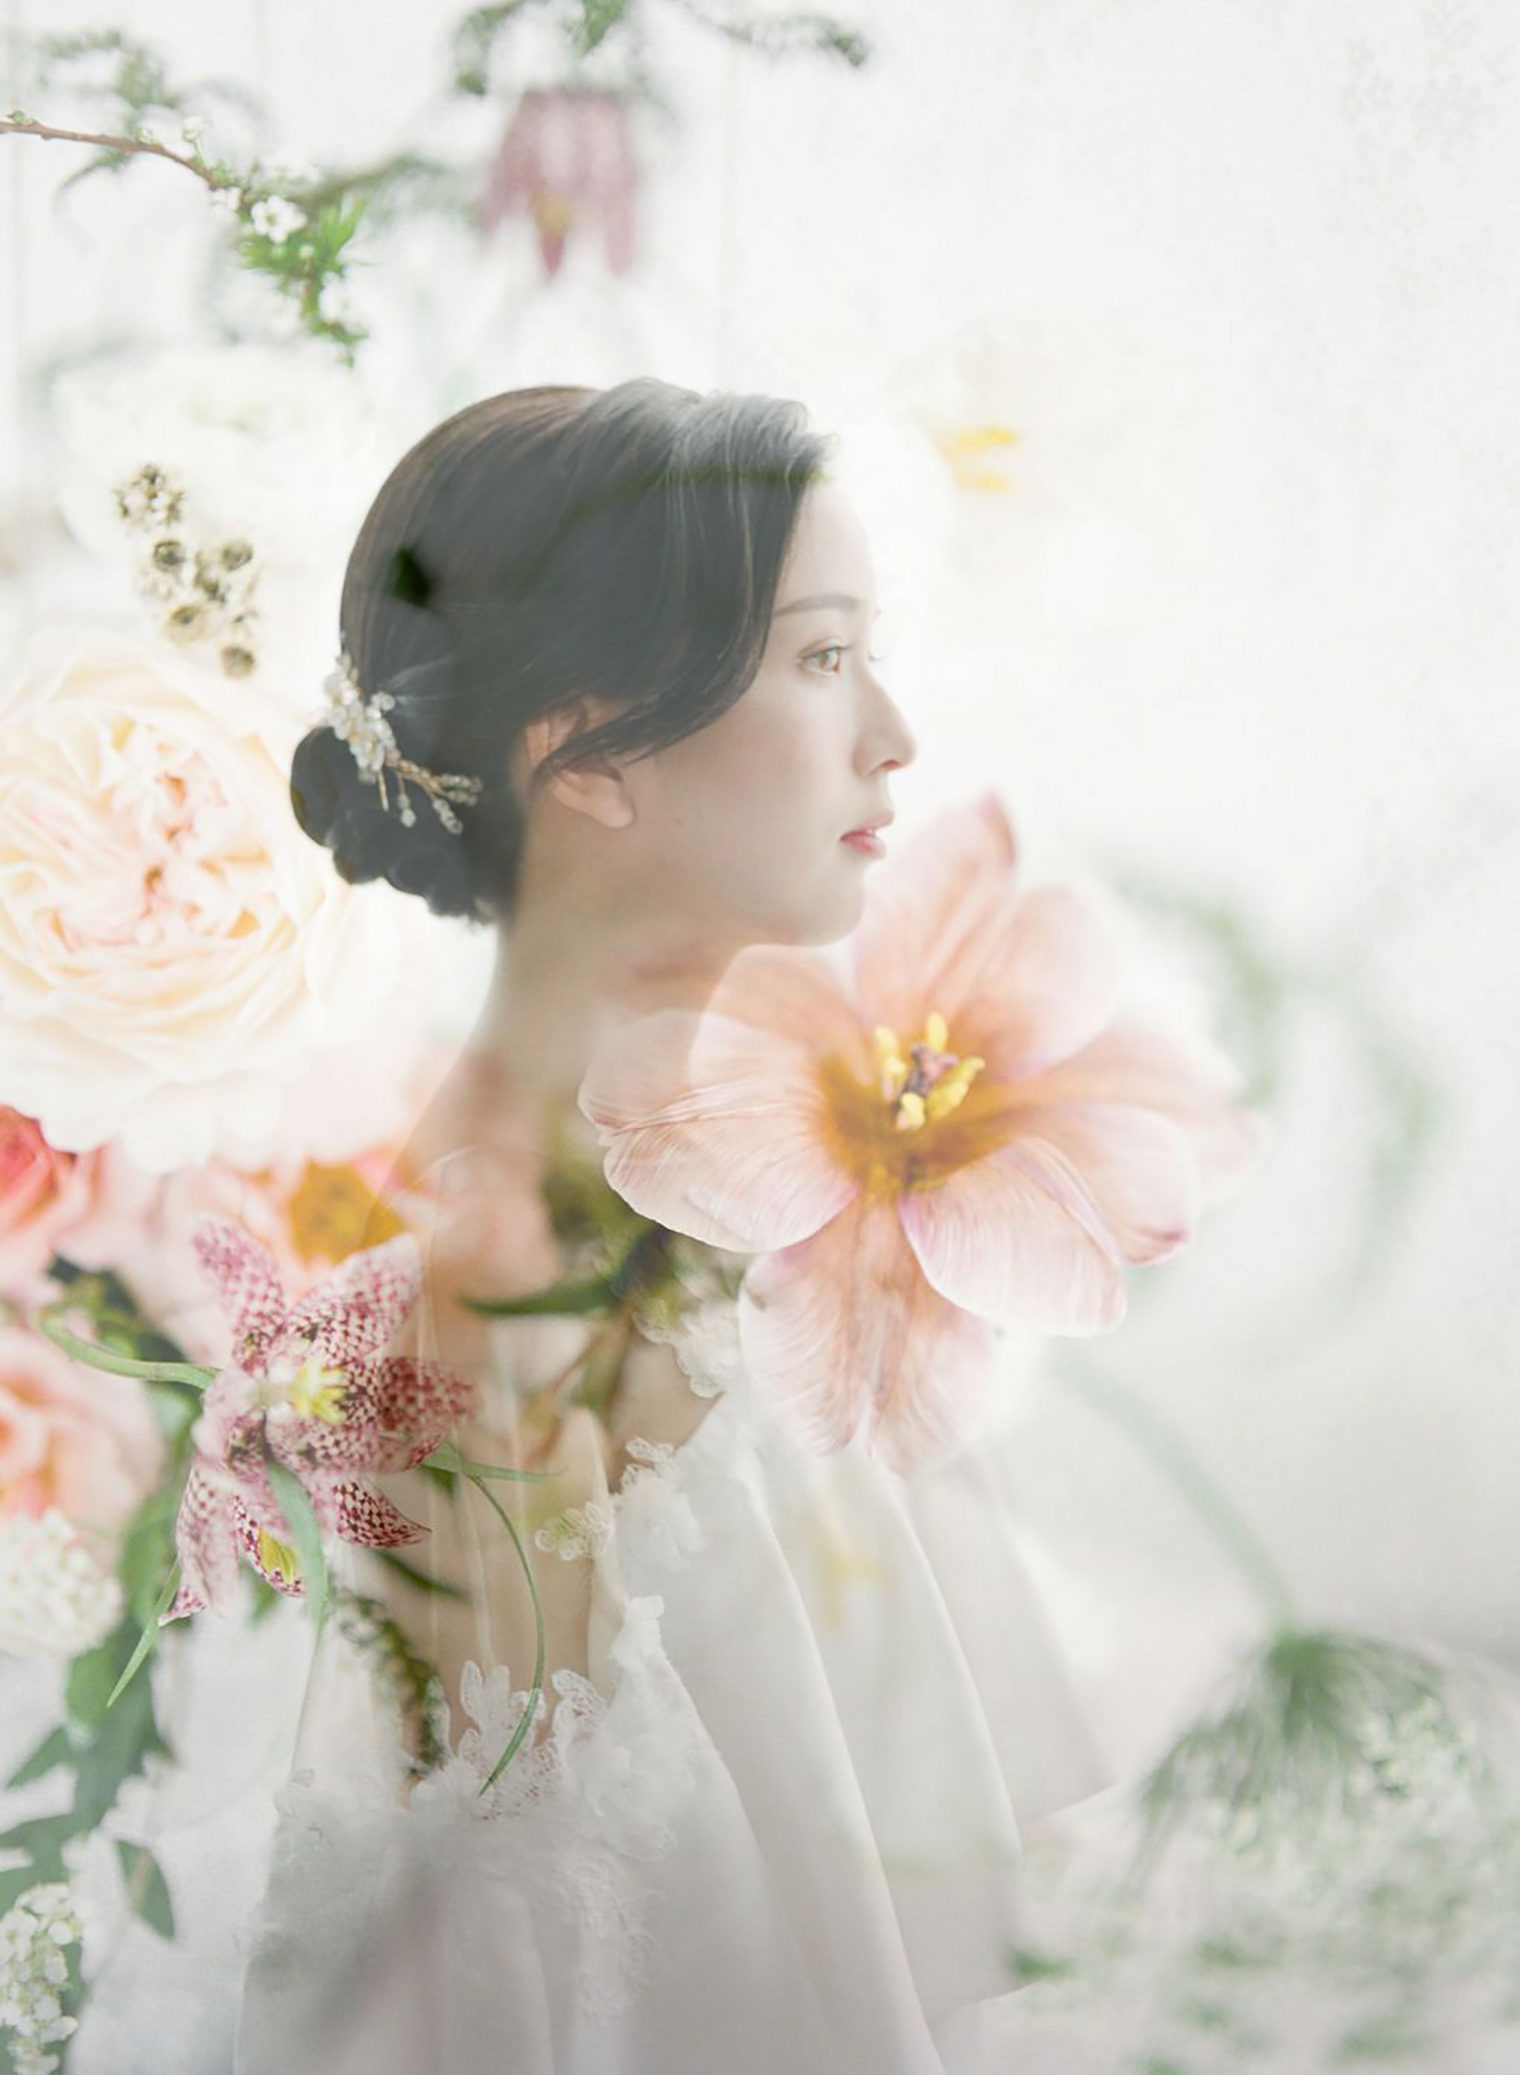 Double Exposure image by photographer Fengjin Li and flowers by floral designer The Parade of Floral Alchemy